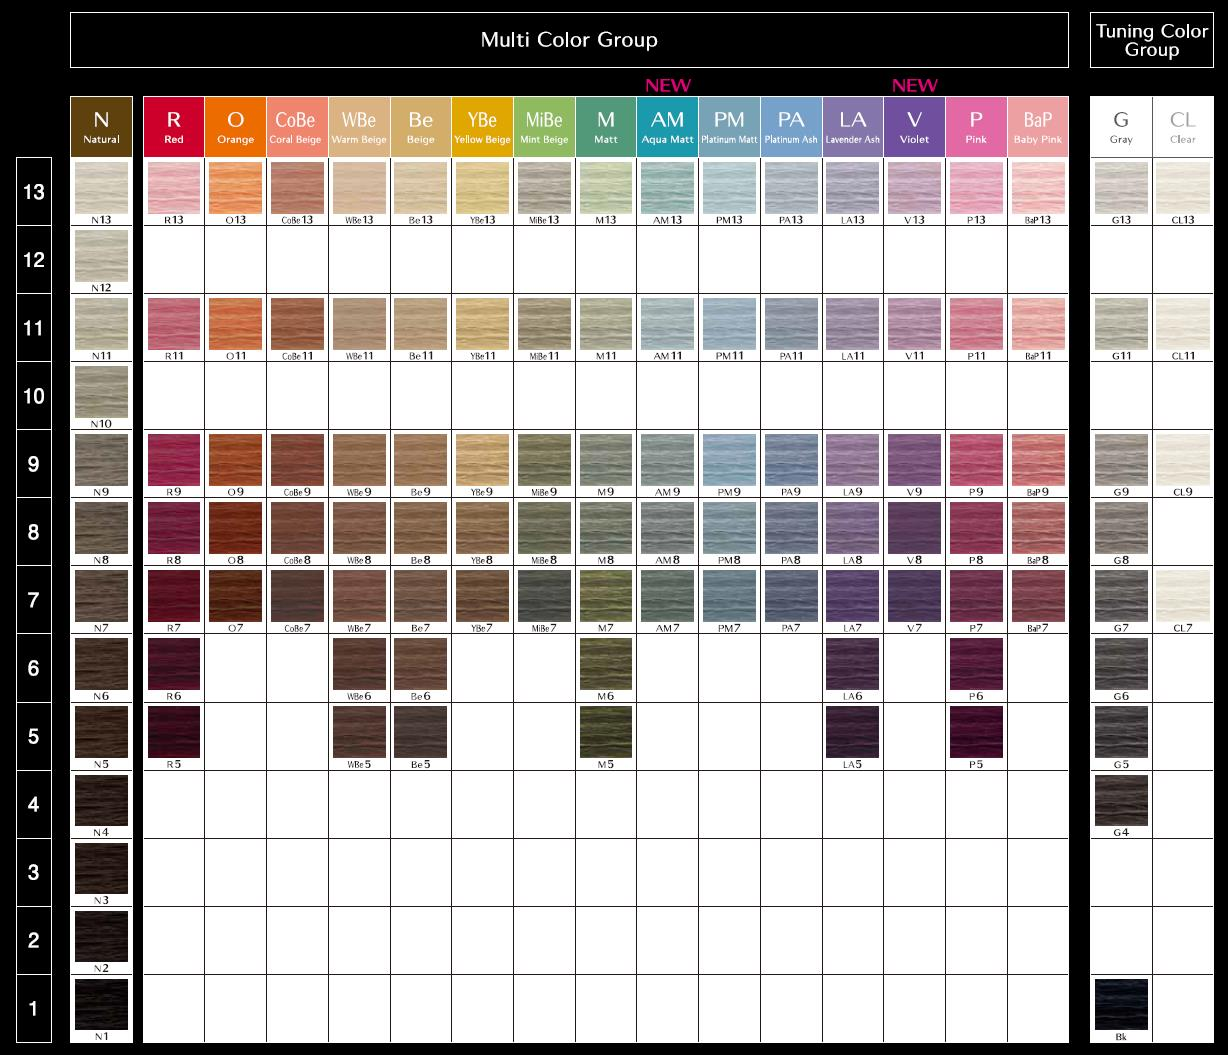 Eki home enrich also has new colours for level 12 and level 9 nvjuhfo Choice Image